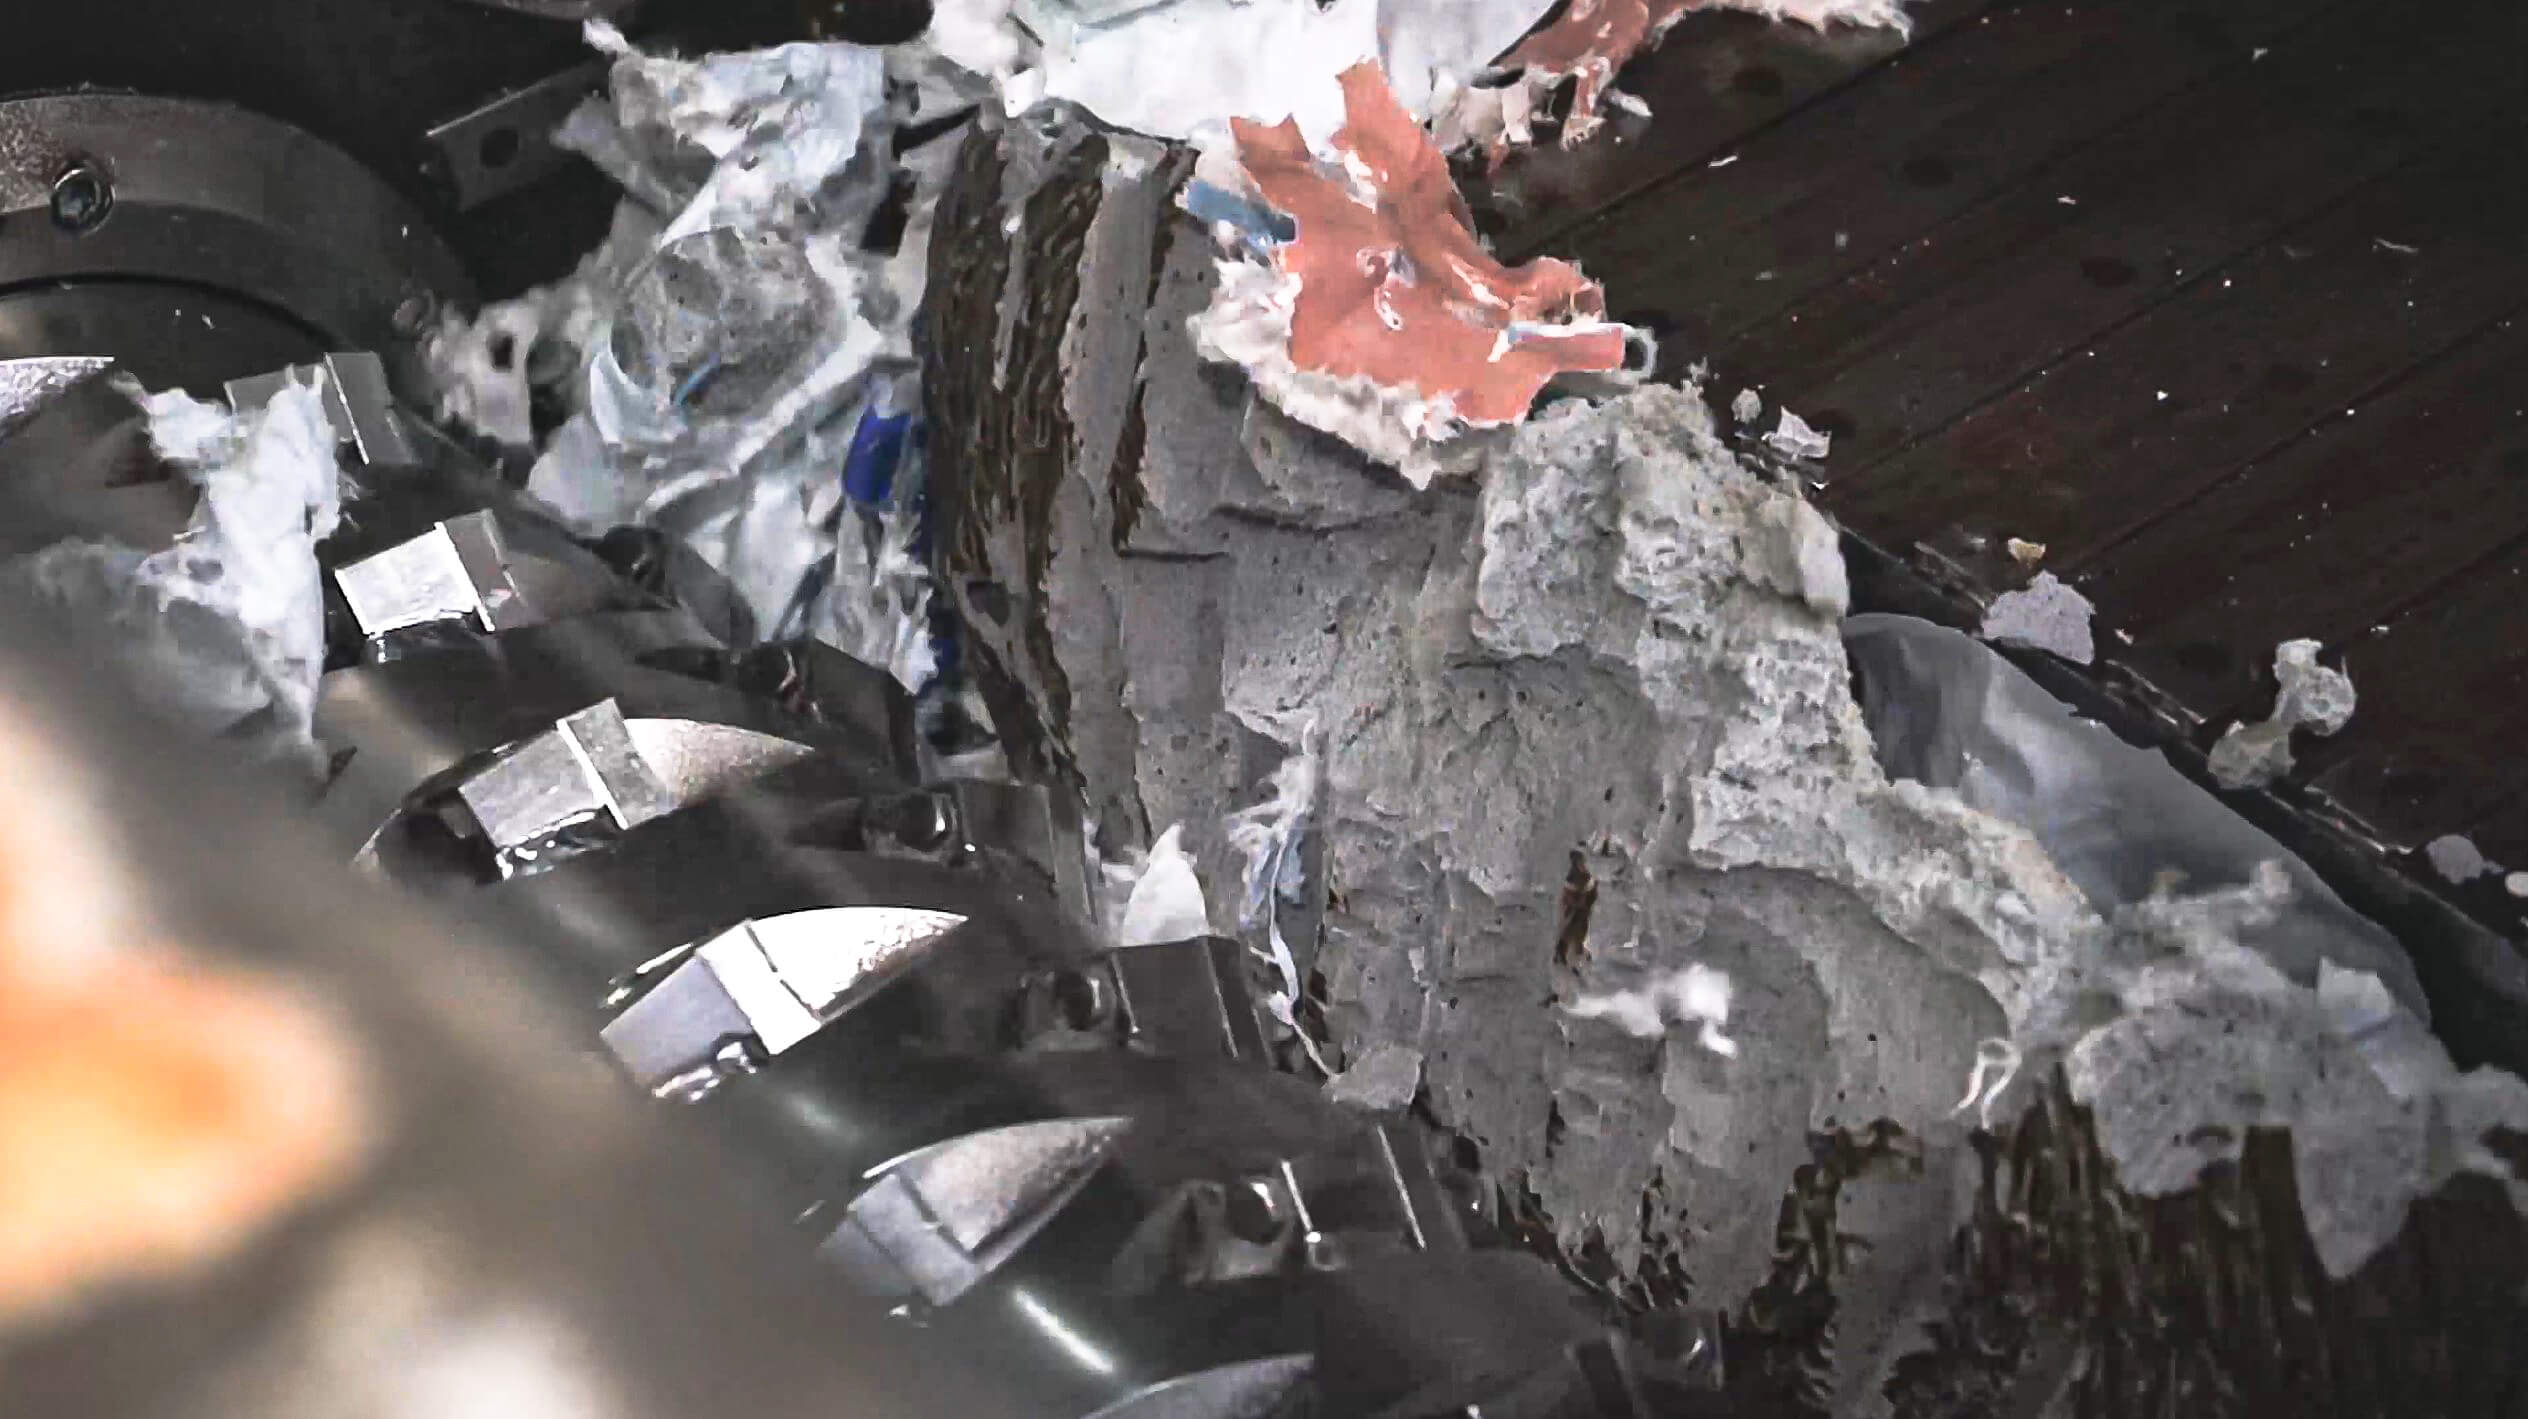 View of the rotor shredding plastic